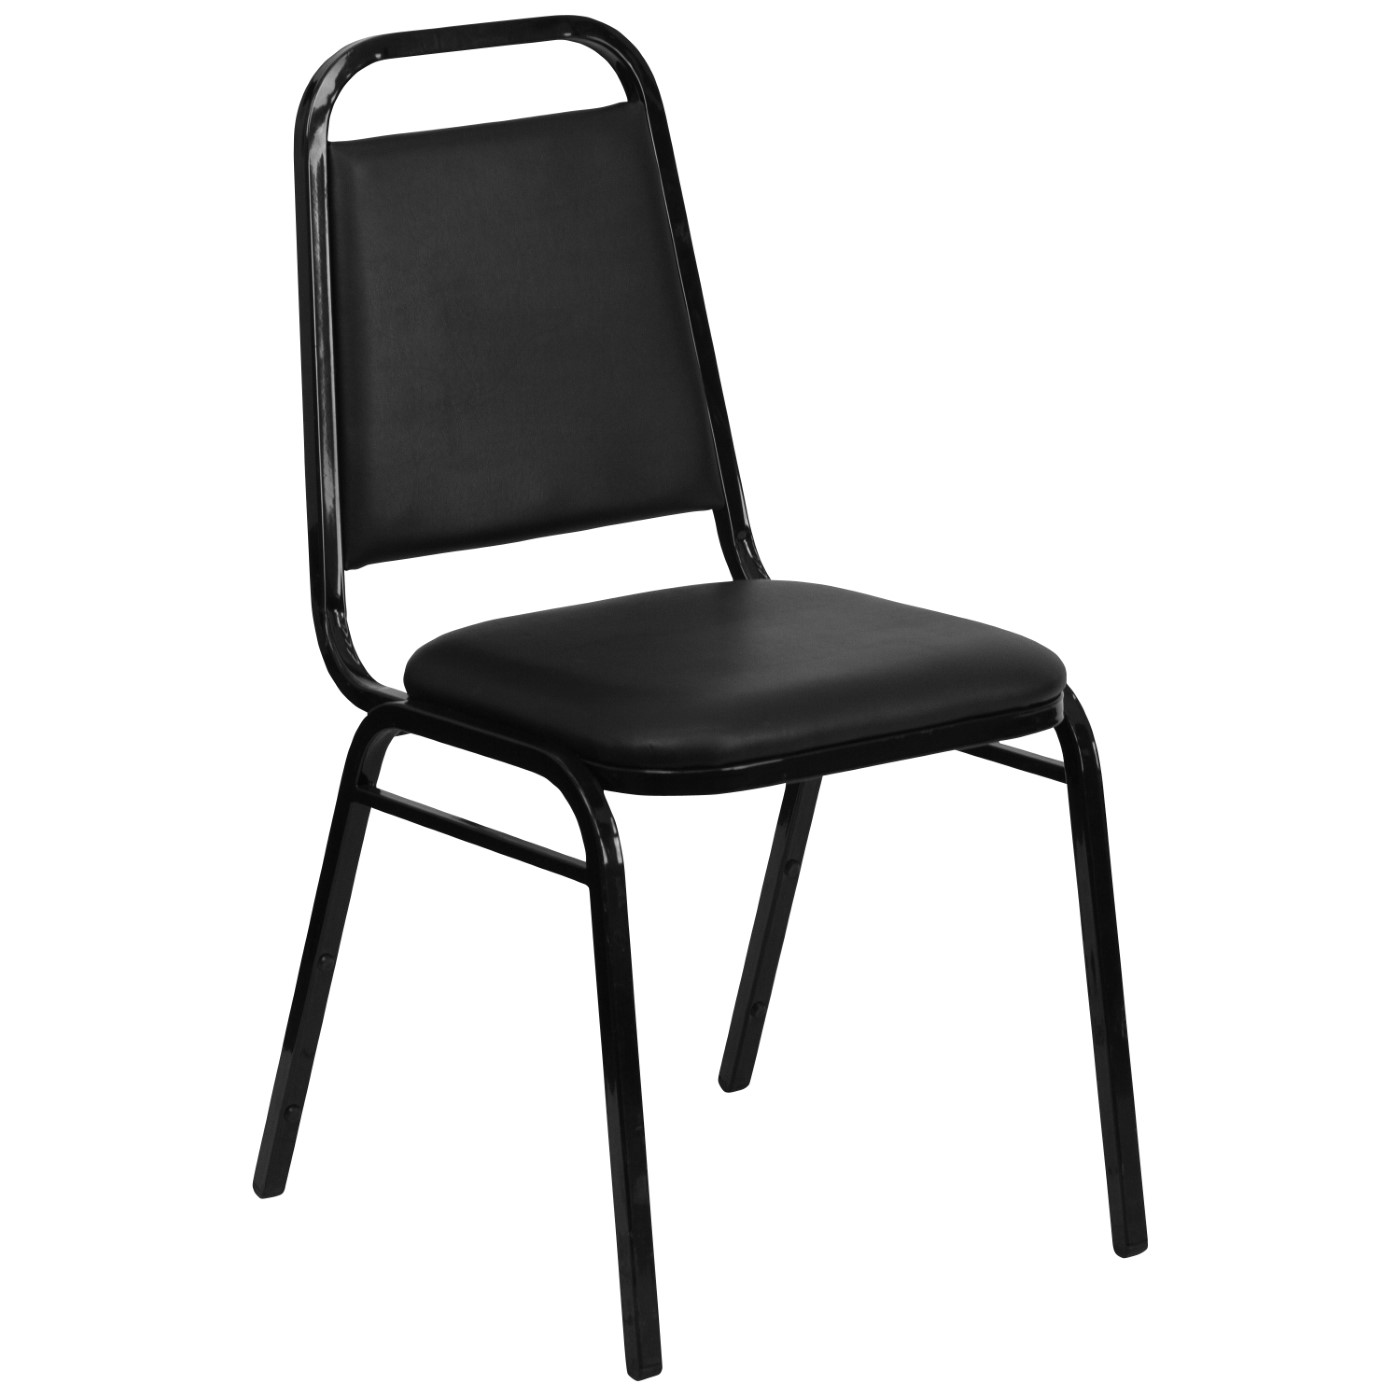 TOUGH ENOUGH Series Trapezoidal Back Stacking Banquet Chair in Black Vinyl - Black Frame